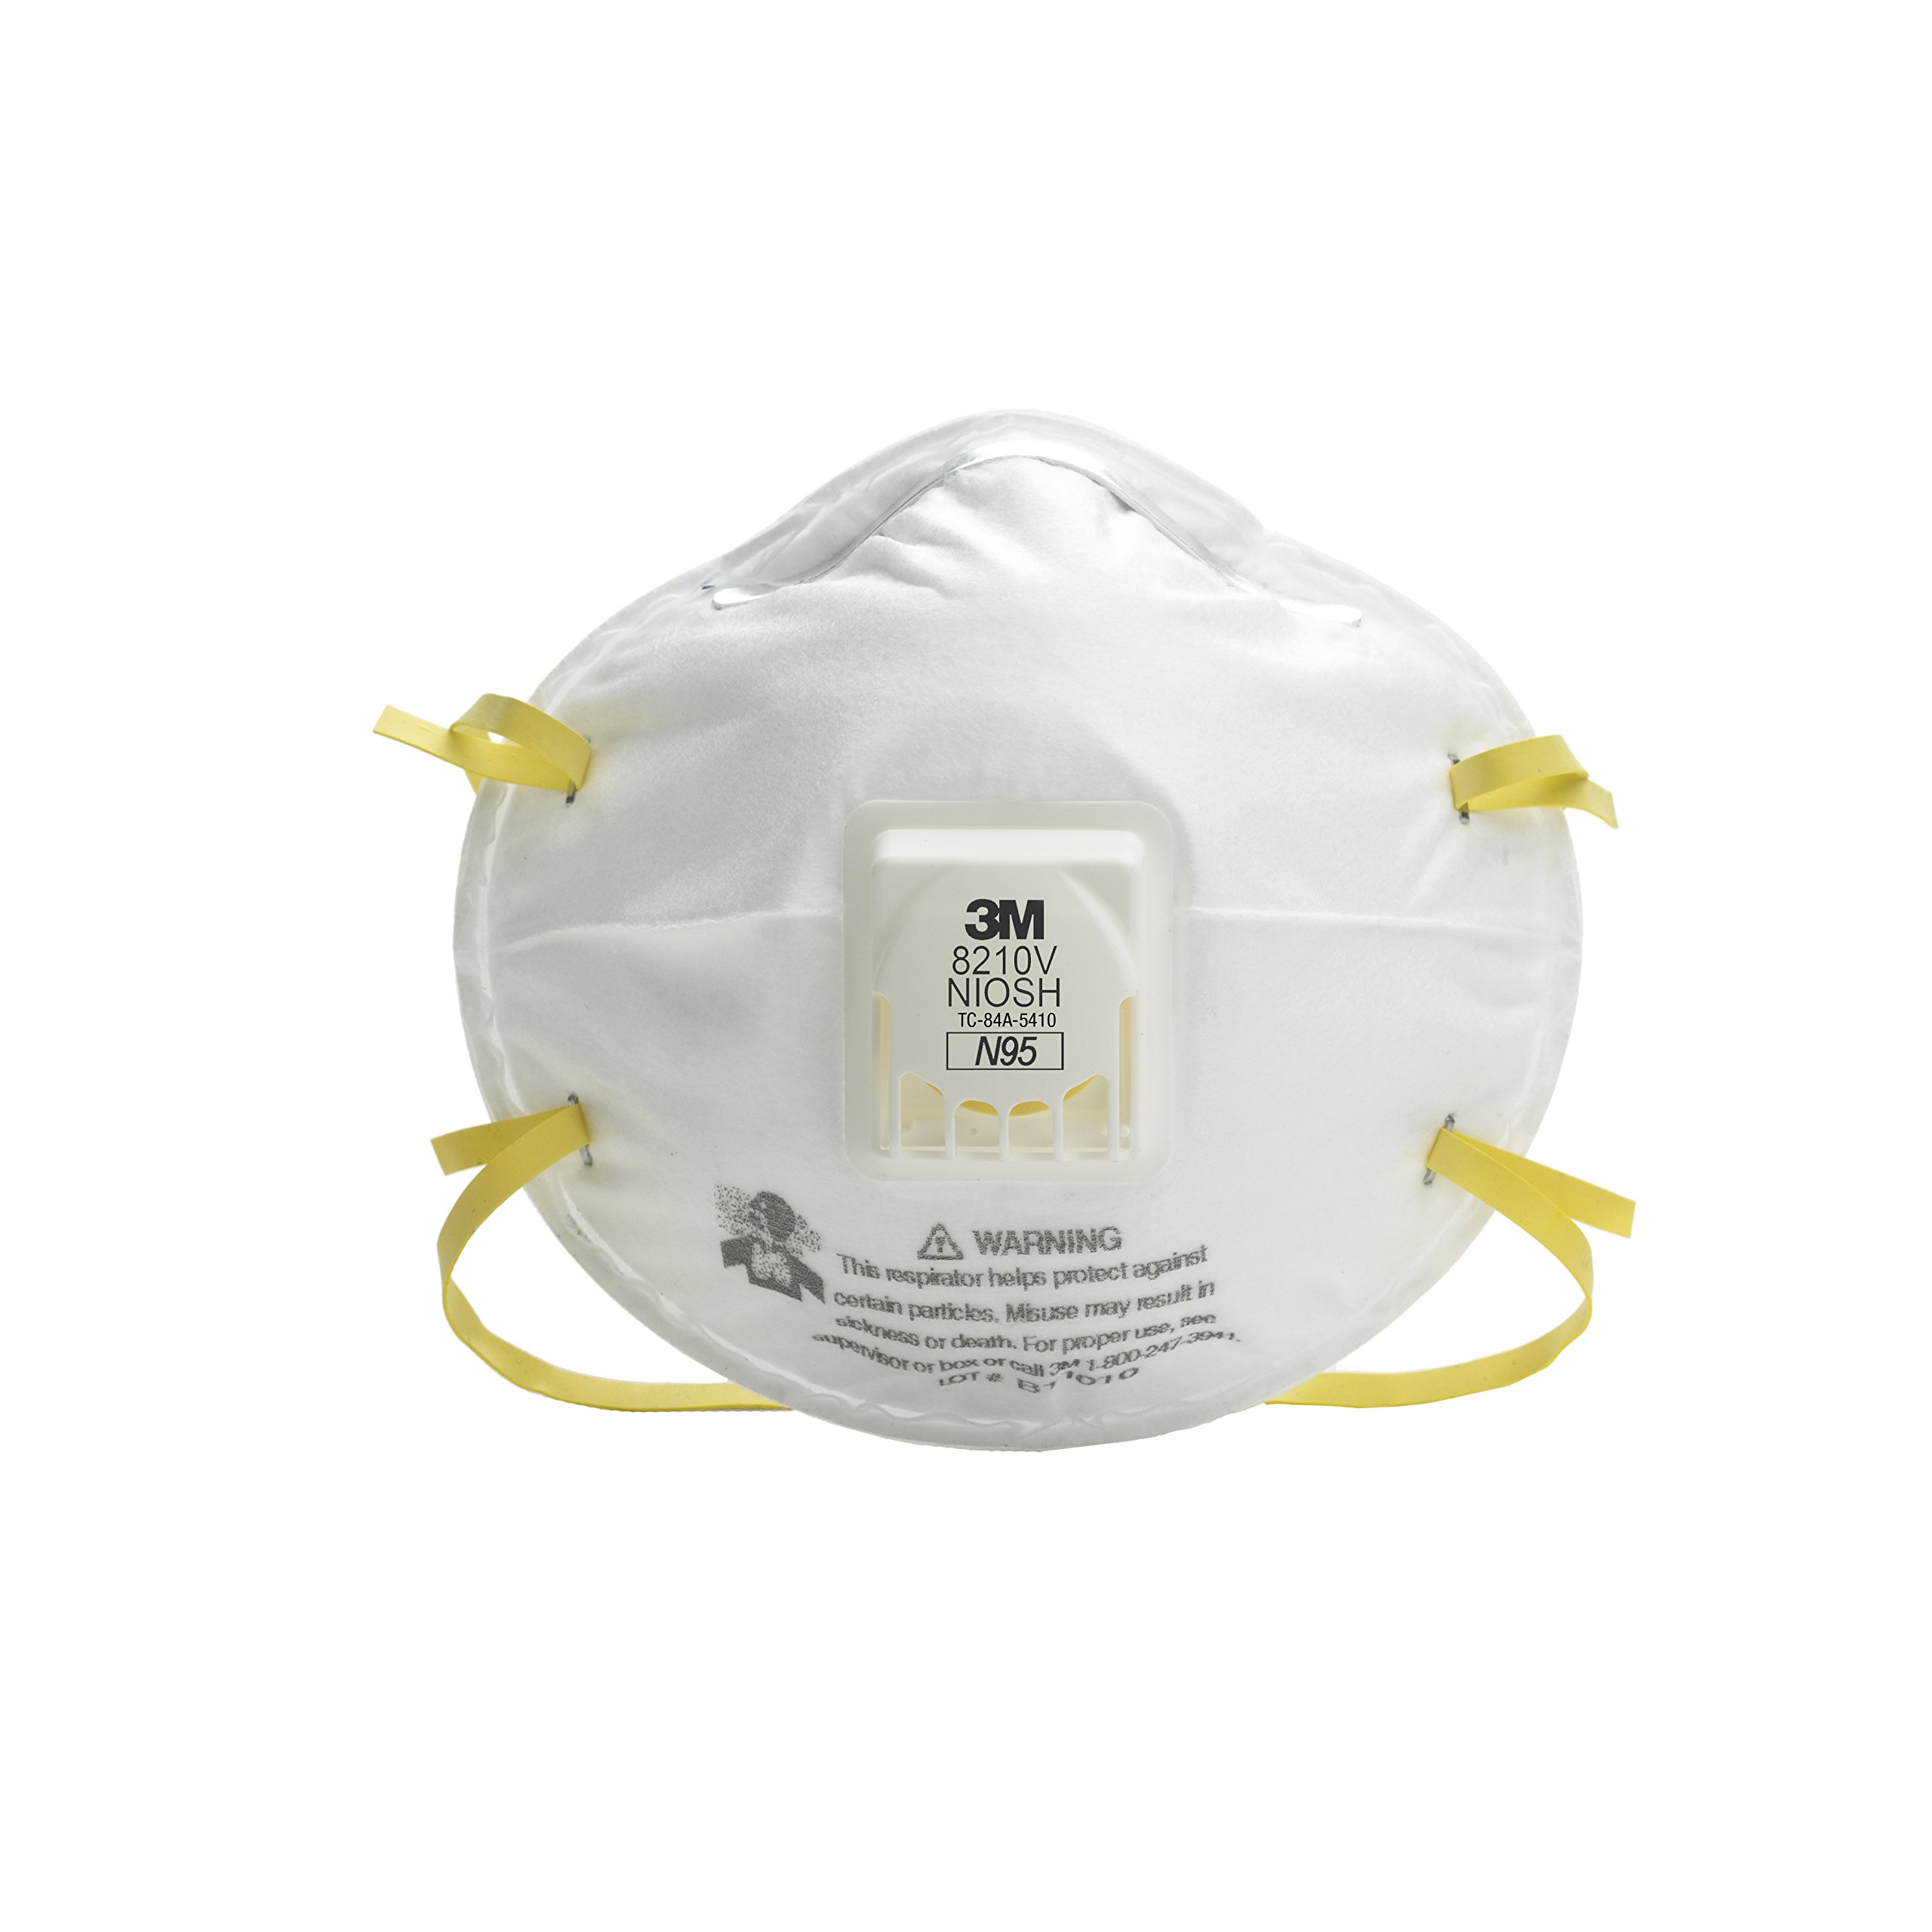 3M(TM) Particulate Respirator 8210V, N95 Respiratory Protection 10/Box by 3M